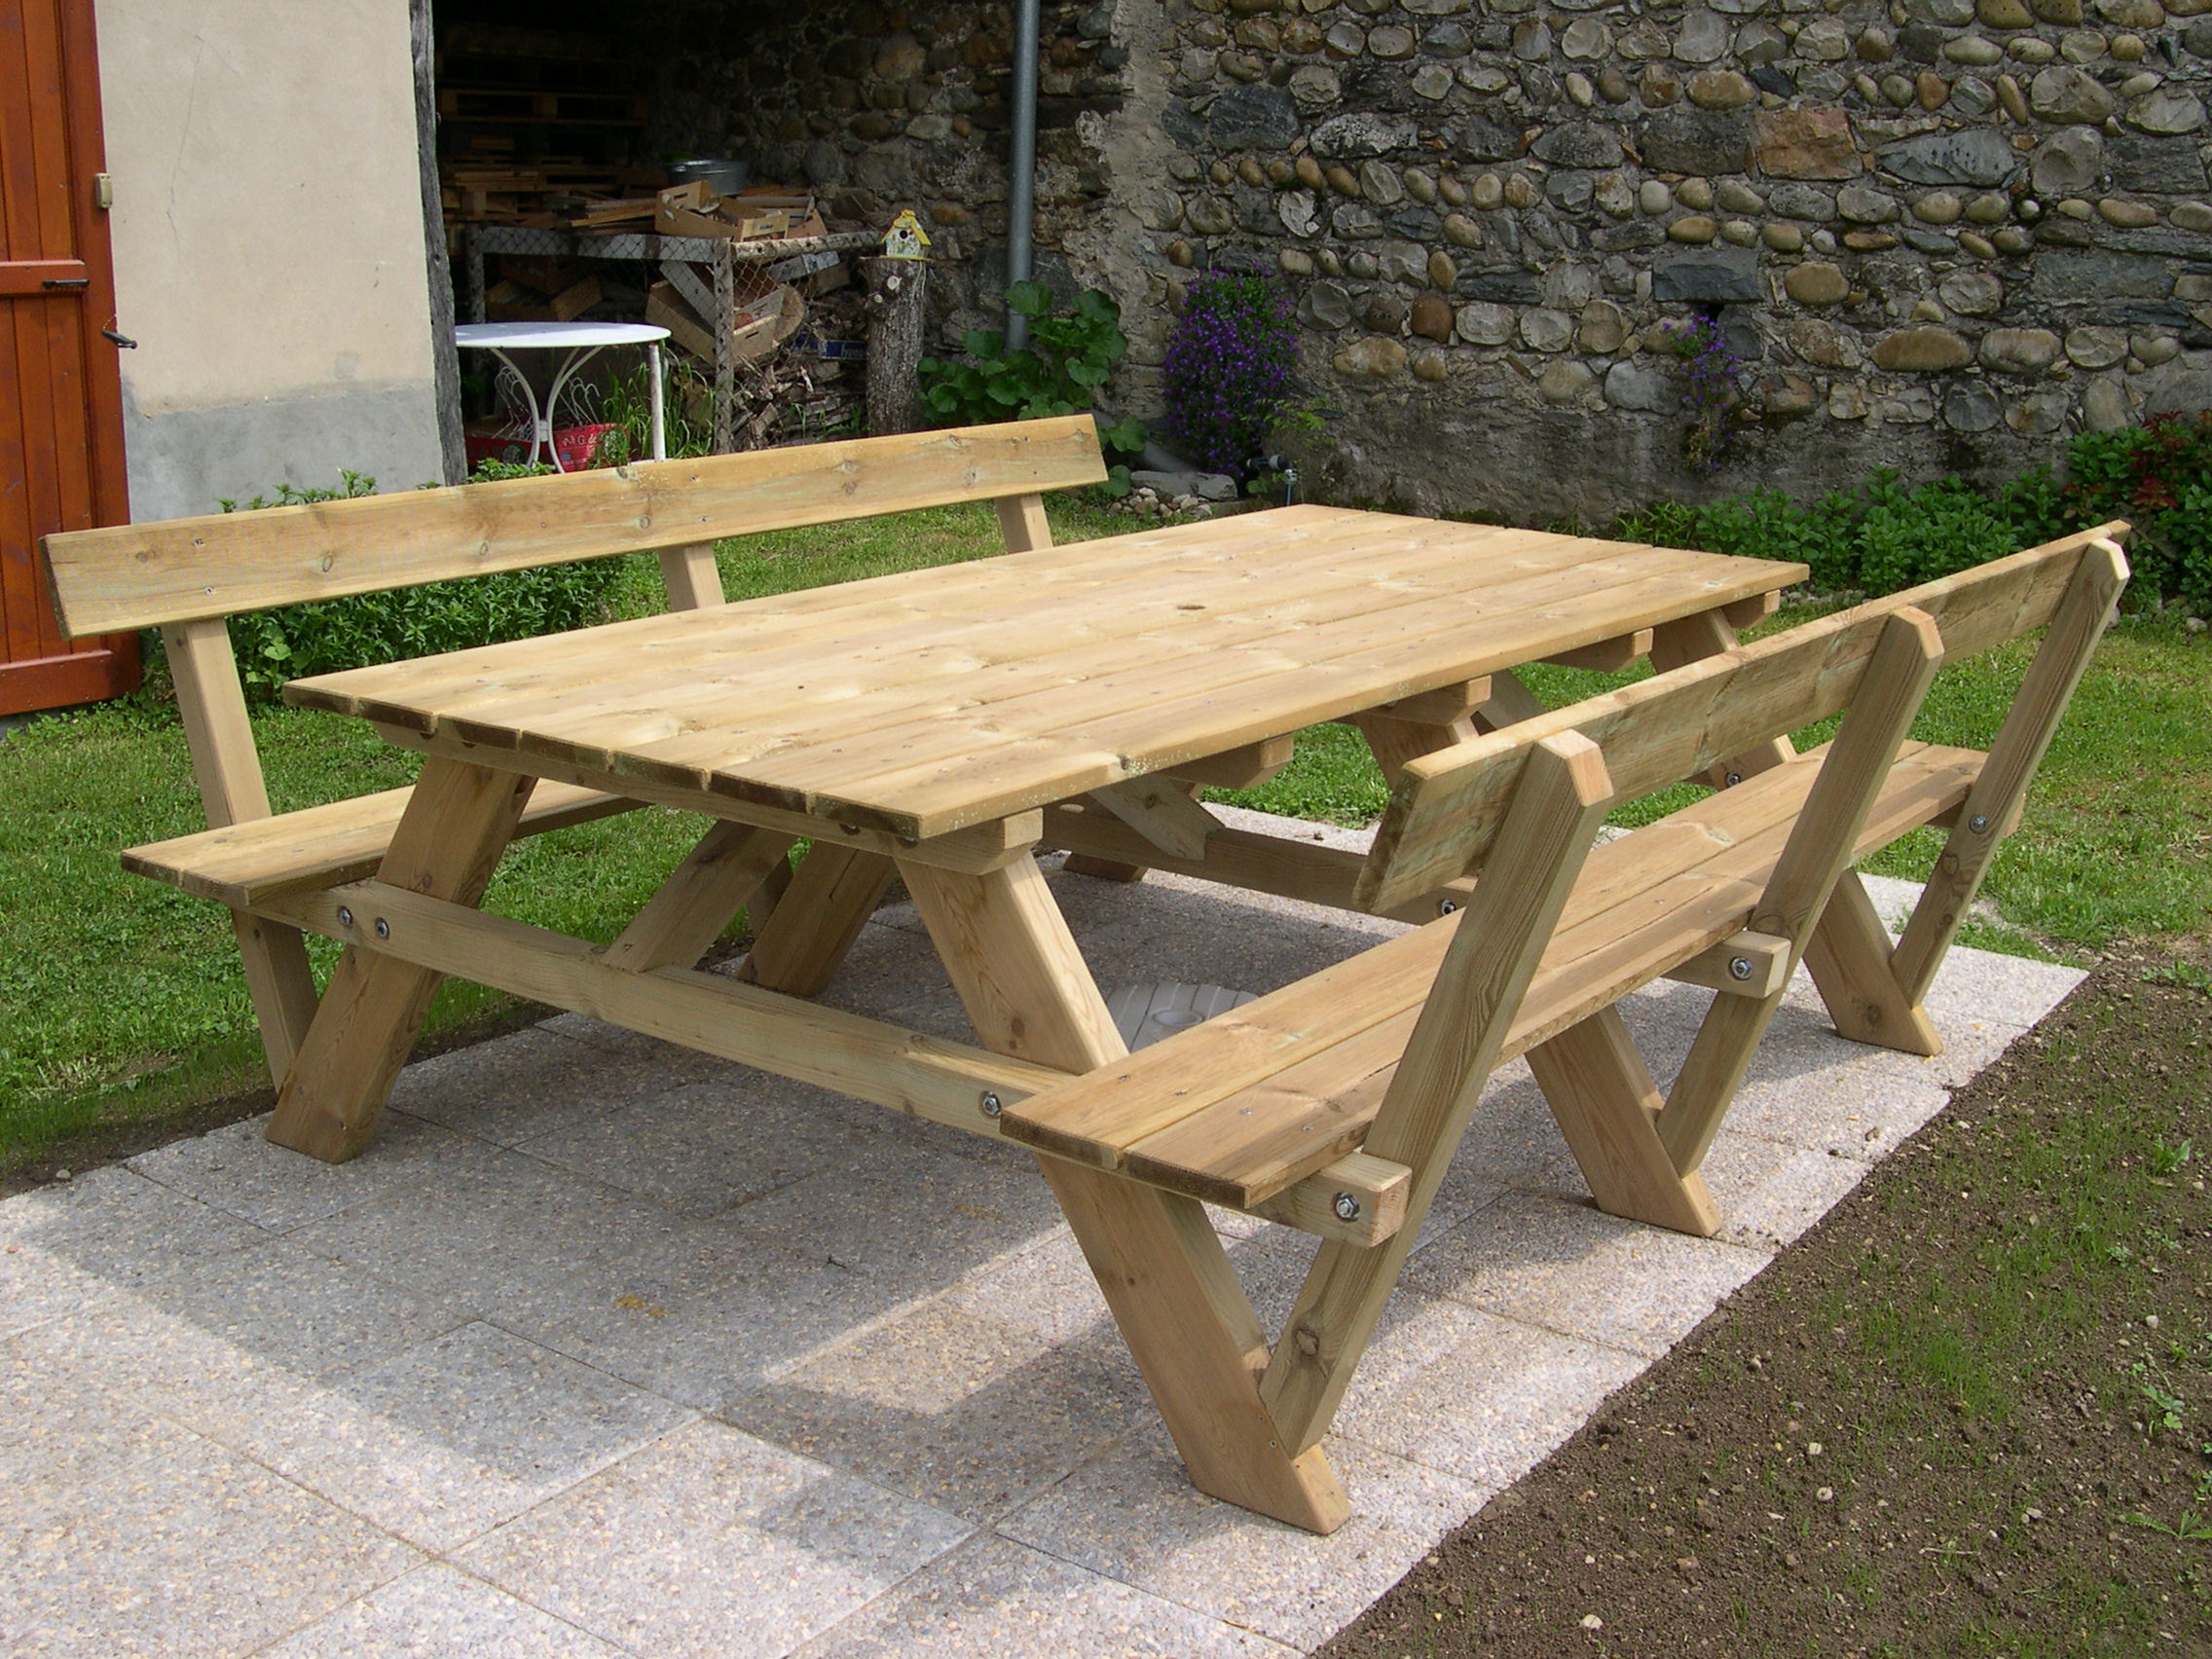 Construction d\'une table pique-nique | Asv850